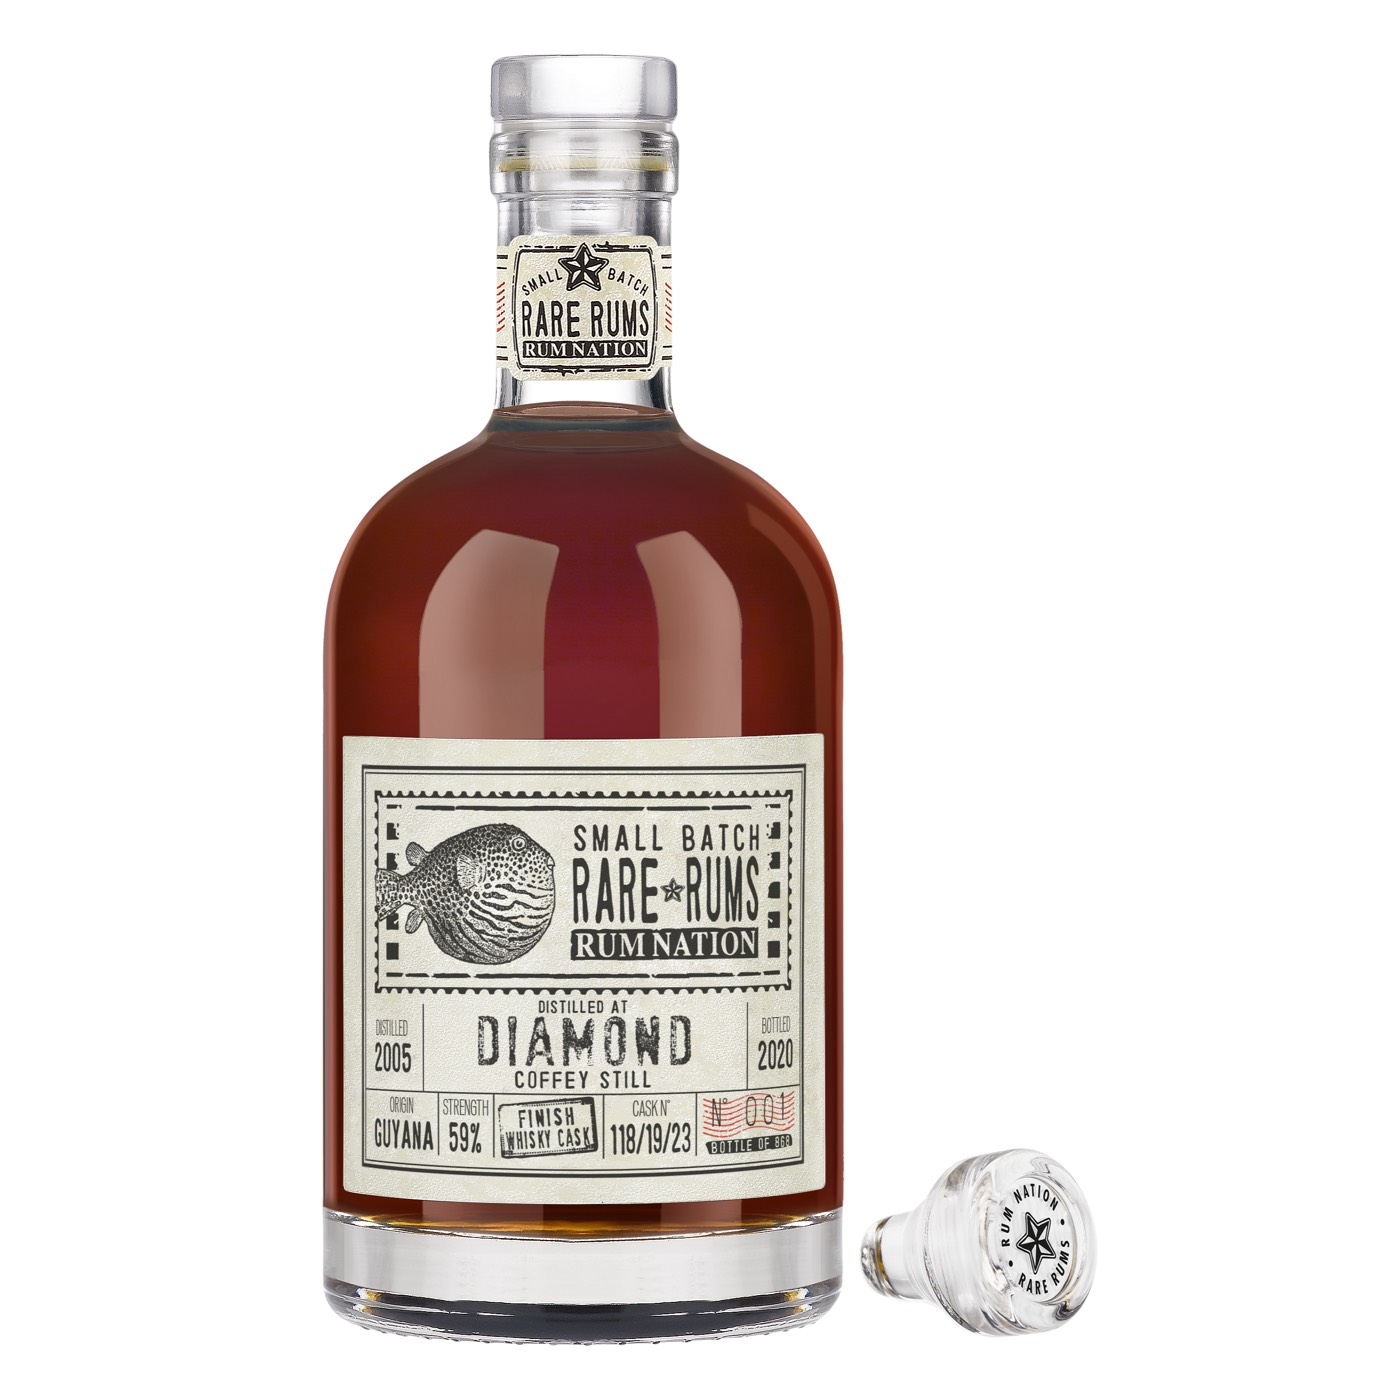 Bottle image of Small Batch Rare Rums SV